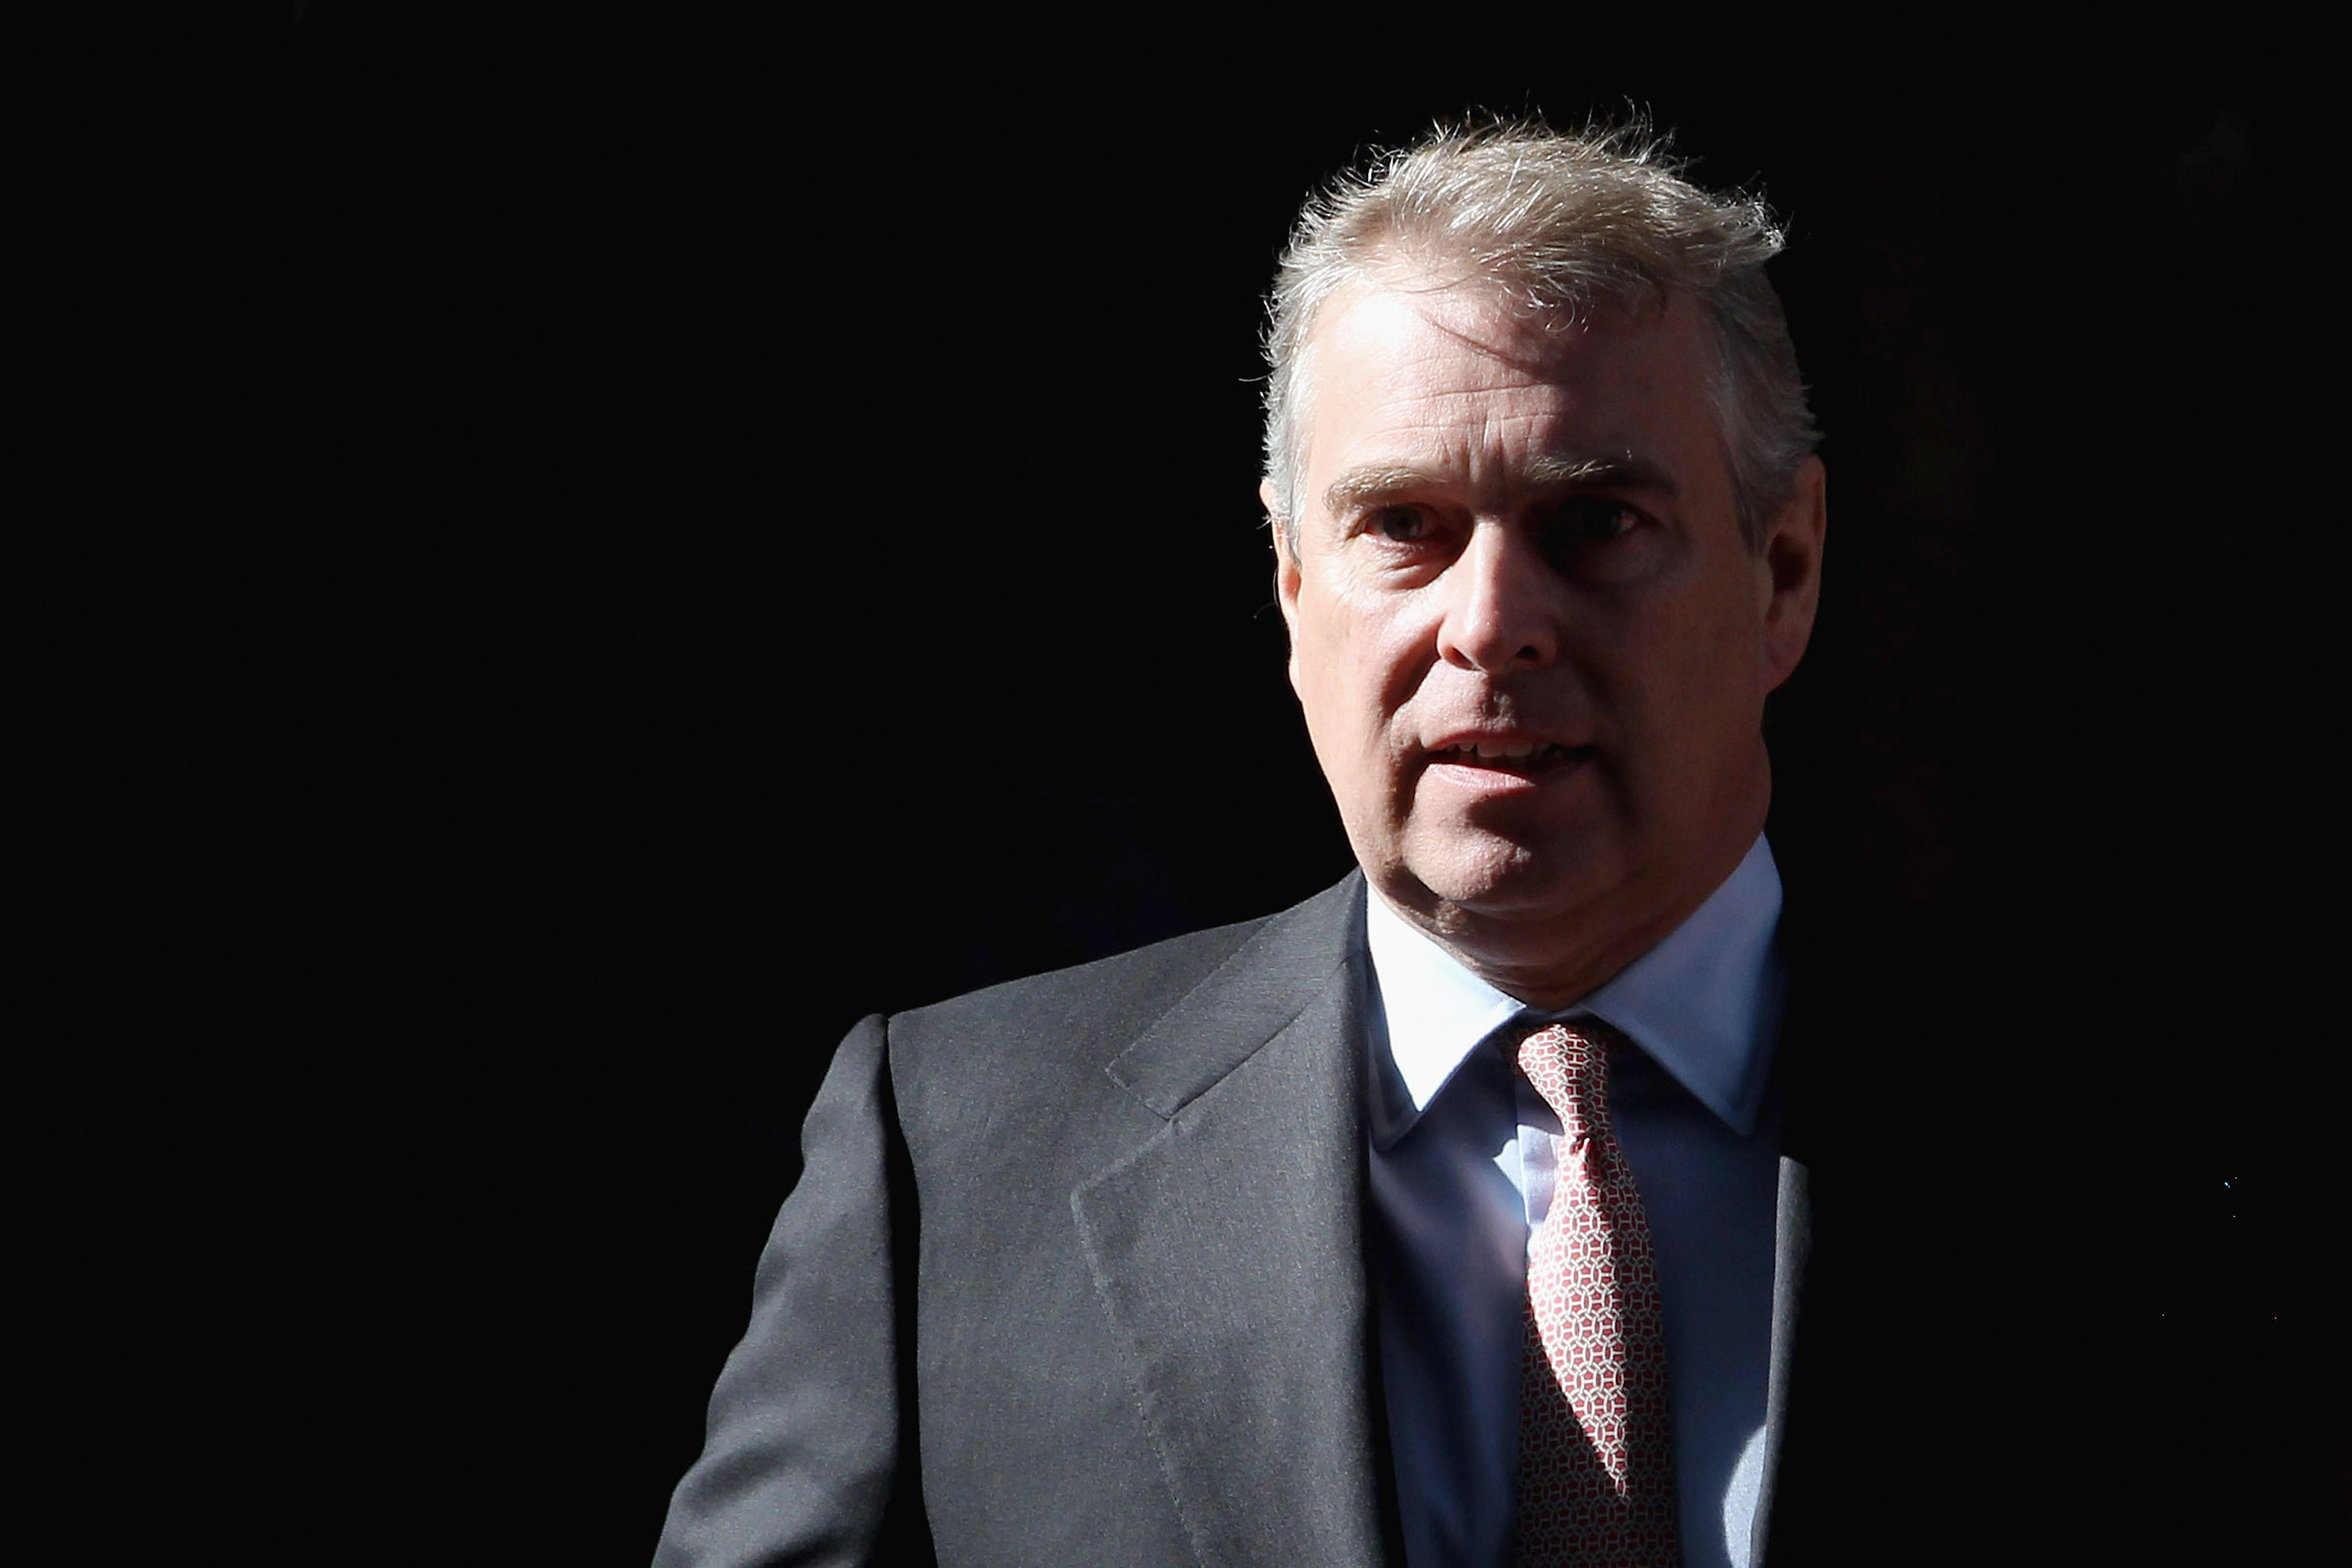 The internet is not impressed by Prince Andrew's interview on the Jeffrey Epstein allegations